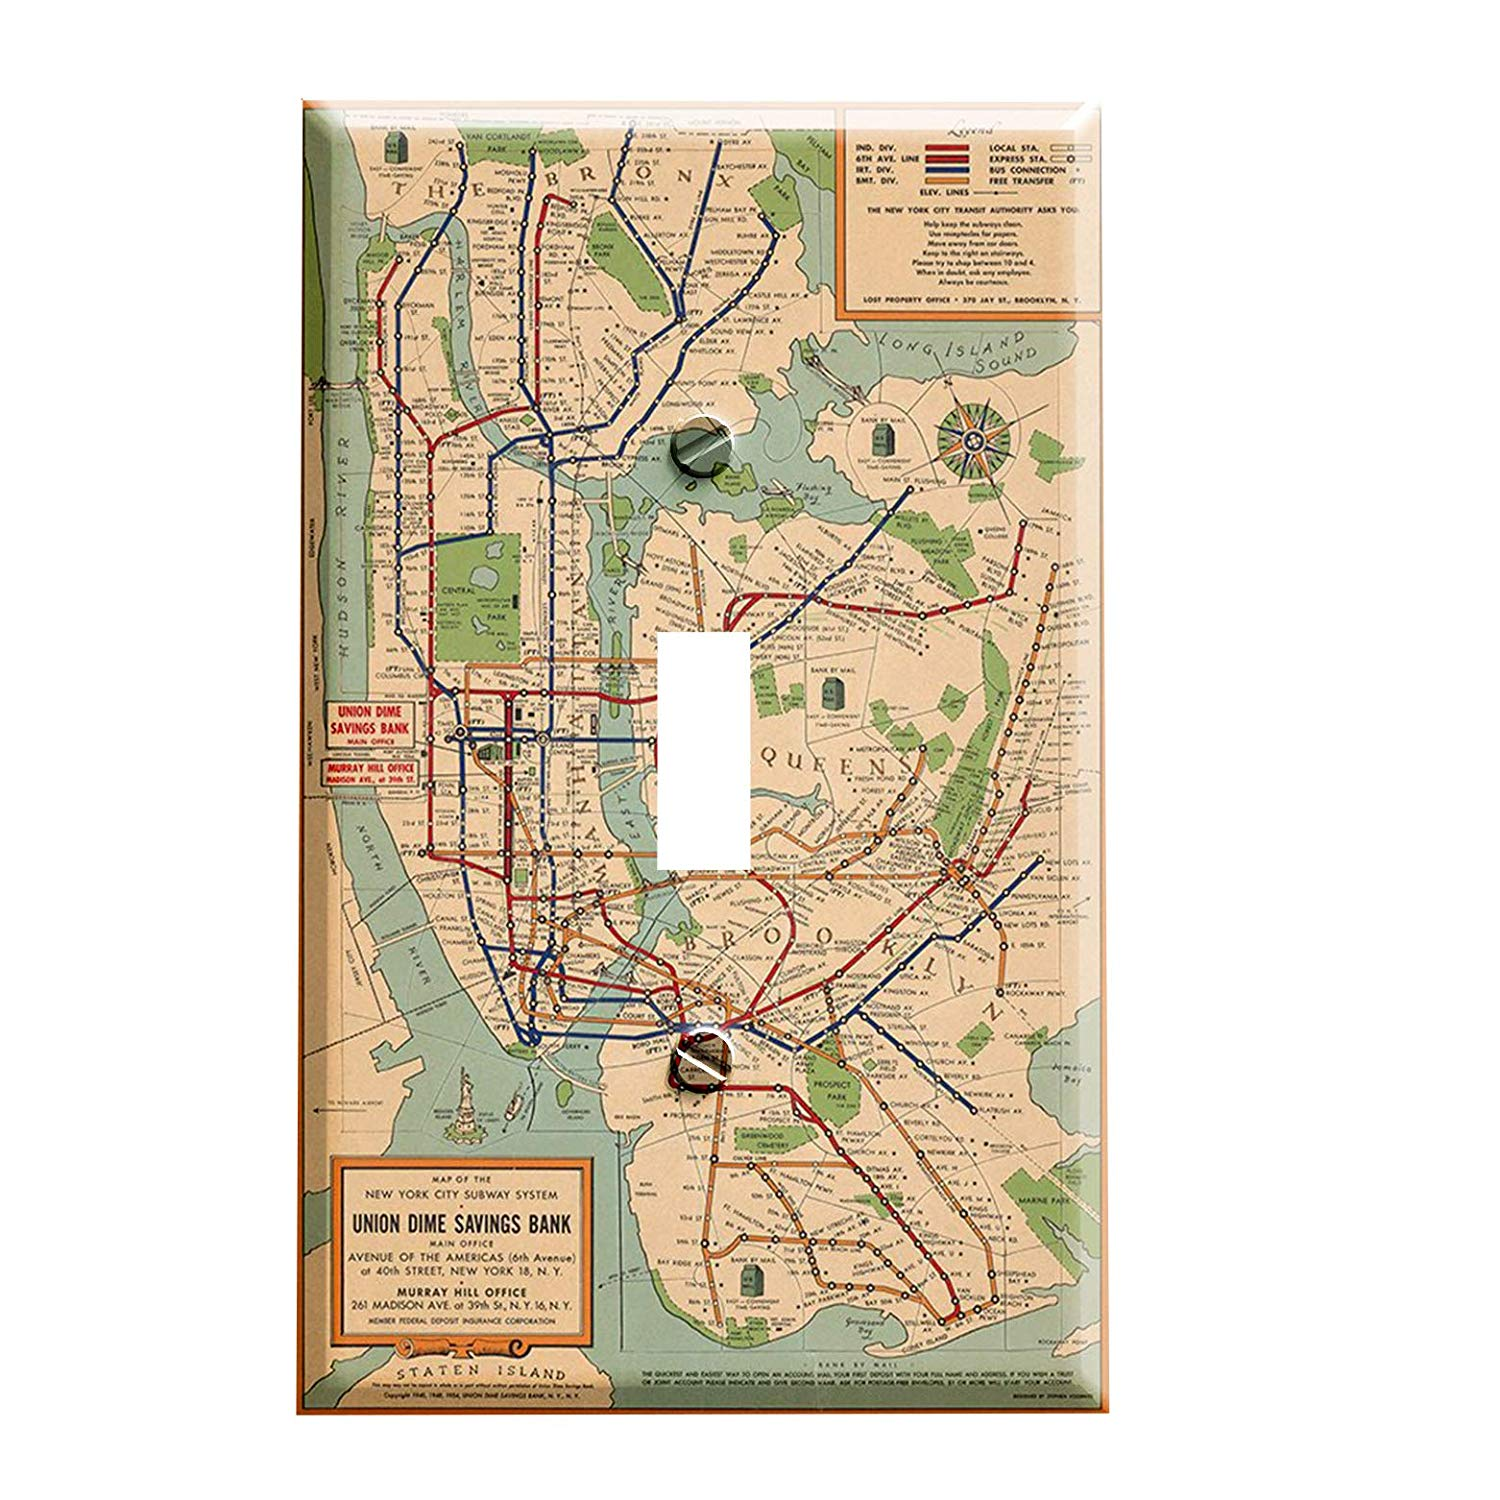 Vintage New York City Subway Map.Vintage Nyc Subway Map Switch Plate